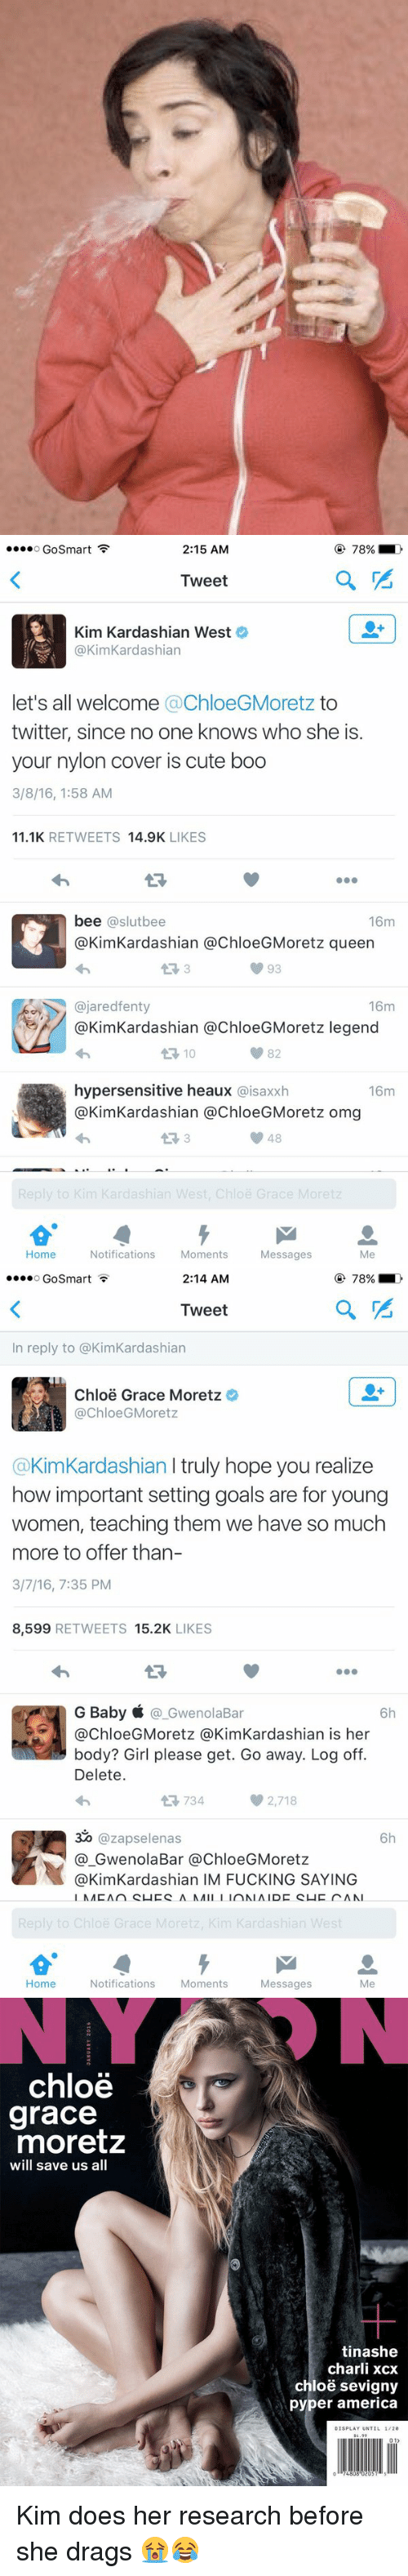 girl please: 2:15 AM  O GoSmart F  Tweet  Kim Kardashian West  @Kim Kardashian  let's all welcome a ChloeGMoretz to  twitter, since no one knows who she is.  your nylon cover is cute boo  3/8/16, 1:58 AM  11.1K  RETWEETS  14.9K  LIKES  bee slutbee  16m  @Kim Kardashian @ChloeGMoretz queen  93  ajaredfenty  16m  @Kim Kardashian a ChloeGMoretz legend  hypersensitive heaux  aisaxxh  16m  @Kim Kardashian a ChloeG Moretz omg  V 48  Reply to Kim Kardashian West, Chloe Grace Moretz  Home  Notifications  Moments  Messages   2:14 AM  O Go Smart  Tweet  In reply to @KimKardashian  Chloe Grace Moretz  @ChloeG Moretz  @Kim Kardashian l truly hope you realize  how important setting goals are for young  women, teaching them we have so much  more to offer than-  3/7/16, 7:35 PM  8,599  RETWEETS 15.2K  LIKES  G Baby  GwenolaBar  6h  body? Girl please get. Go away. Log off.  Delete.  734  2,718  320 @zapselenas  6h  Gwenola Bar a ChloeGMoretz  @Kim Kardashian IM FUCKING SAYING  NAC An CLICC ANA  loe Grace More  Home  Notifications  Moments  Messages   chloe  grace  moretz  will save us all  tinashe  charli xcx  chloe sevigny  pyper america  DISPLAY UNTIL 1/20  01> Kim does her research before she drags 😭😂